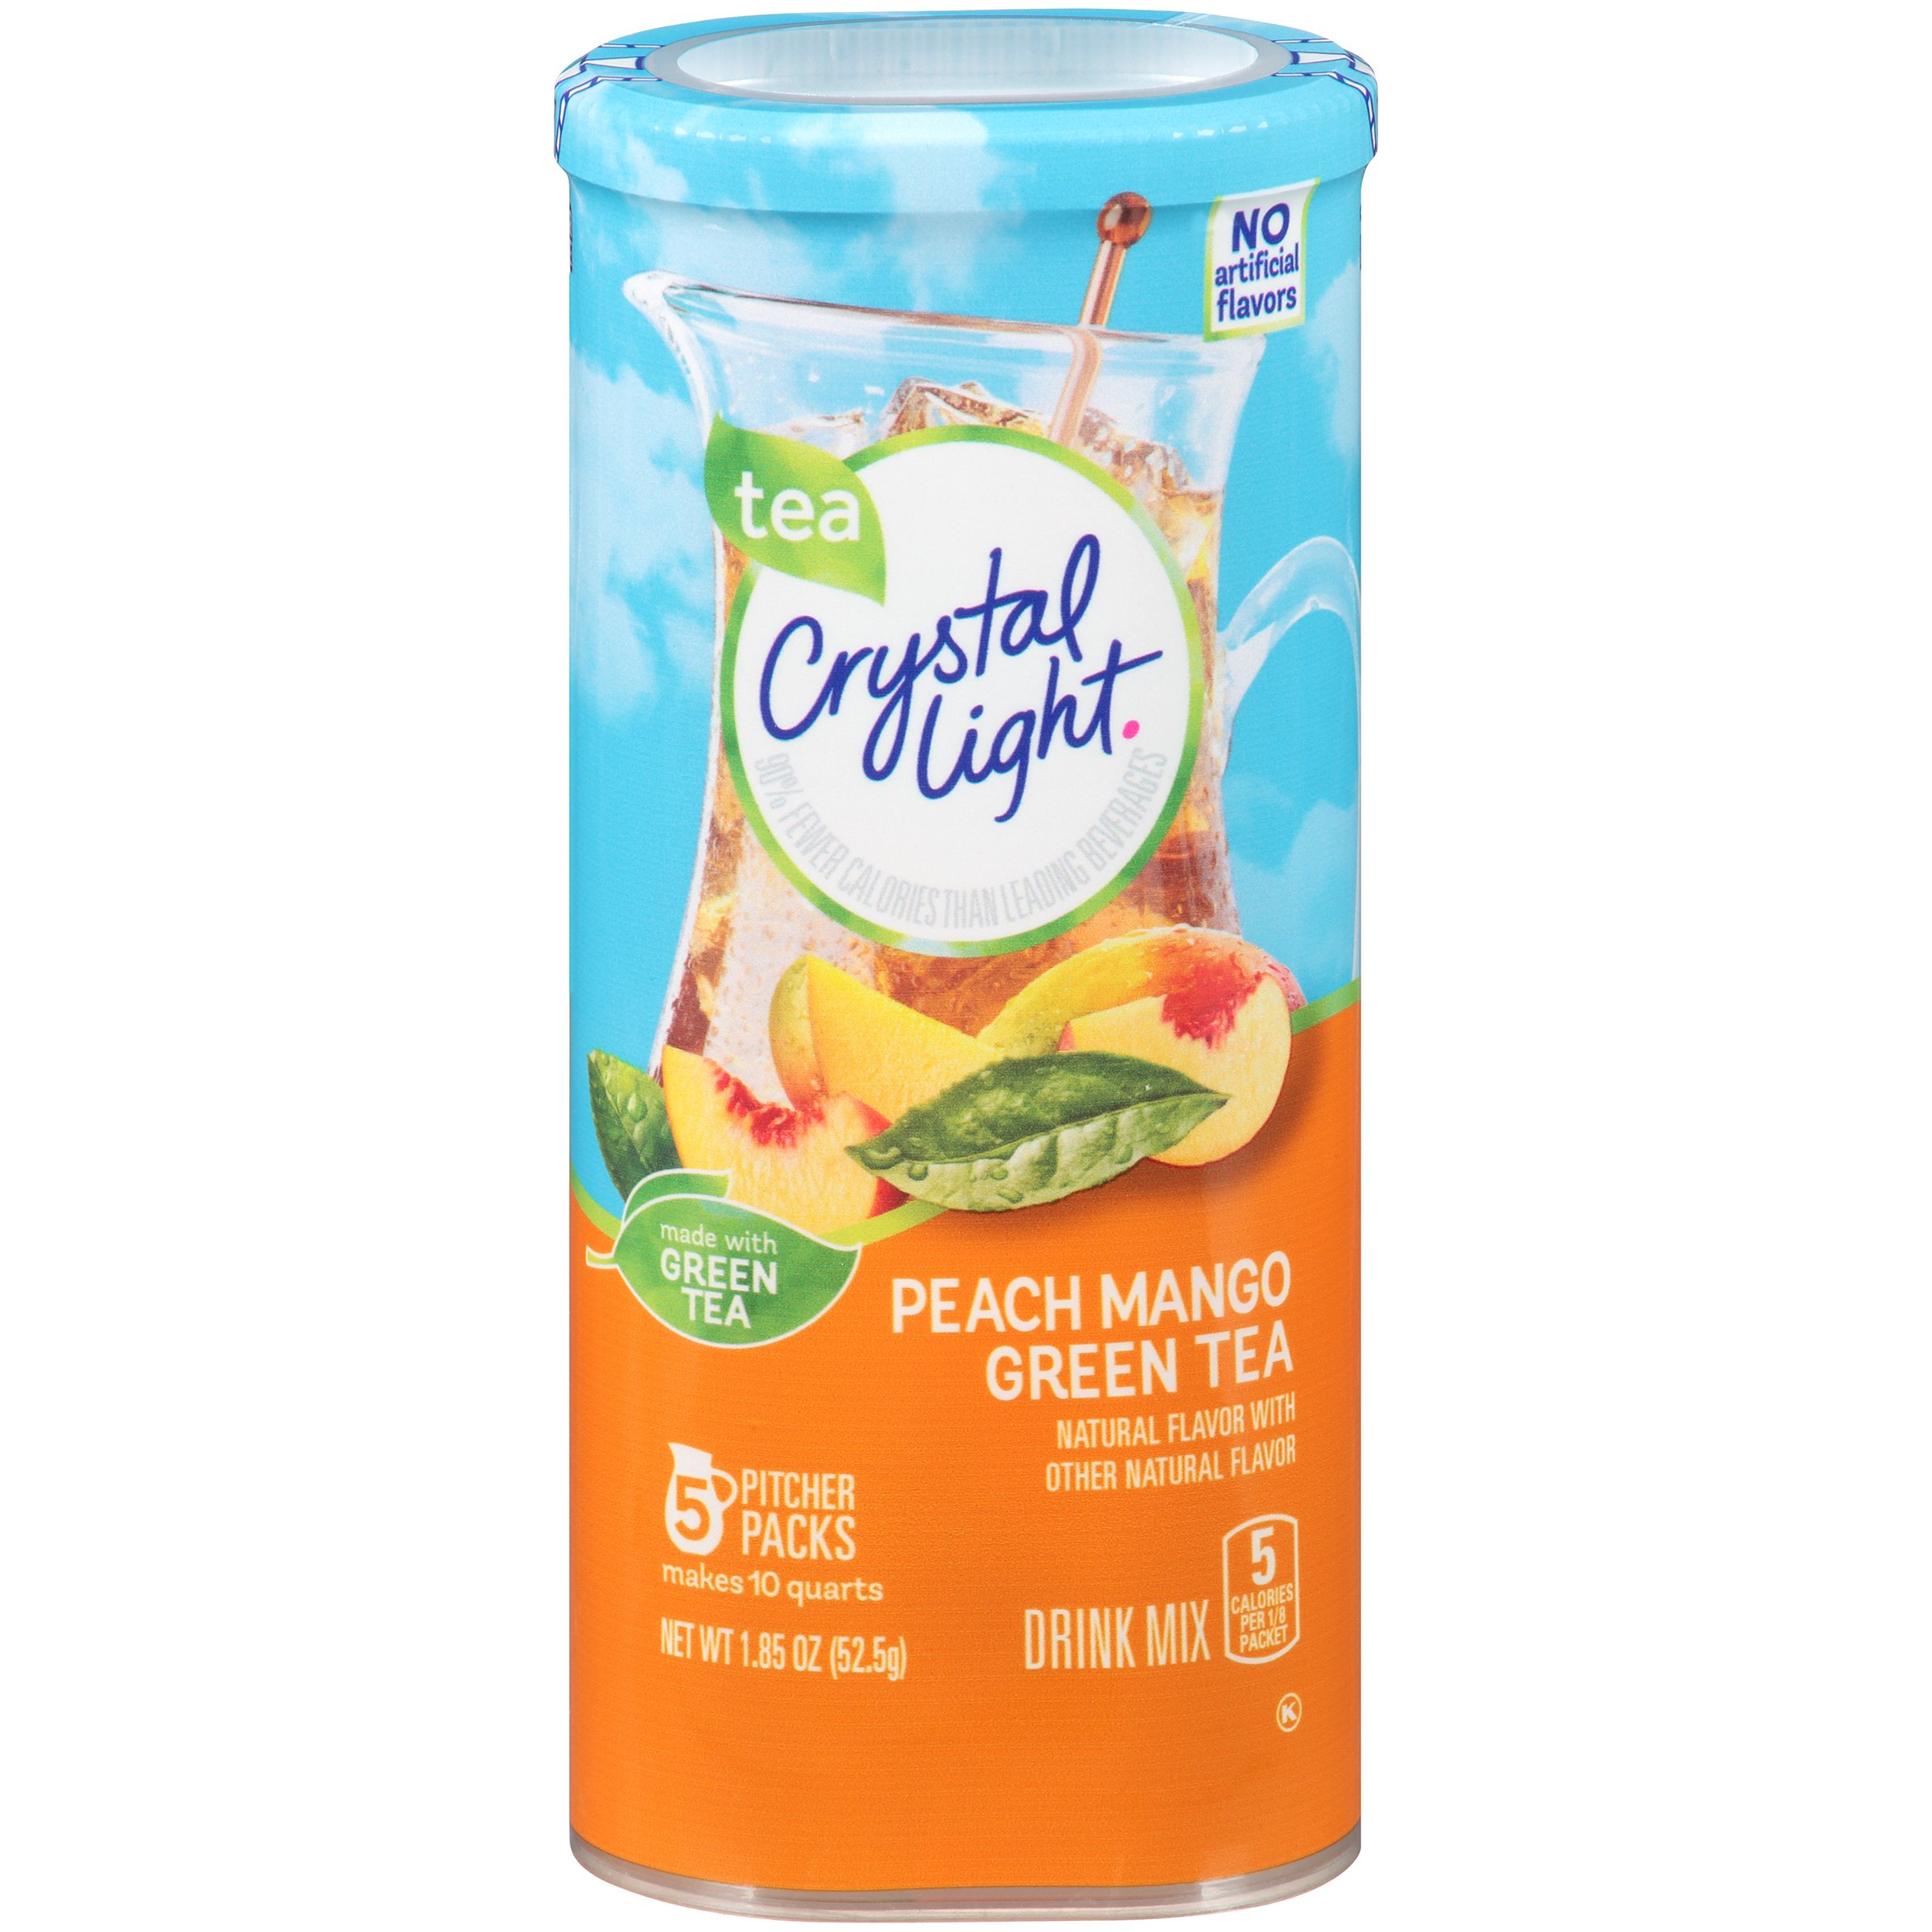 Crystal Light Drink Mix, Peach Mango Green Tea, Pitcher Packets (Pack of 12 Canisters) by Crystal Light (Image #1)